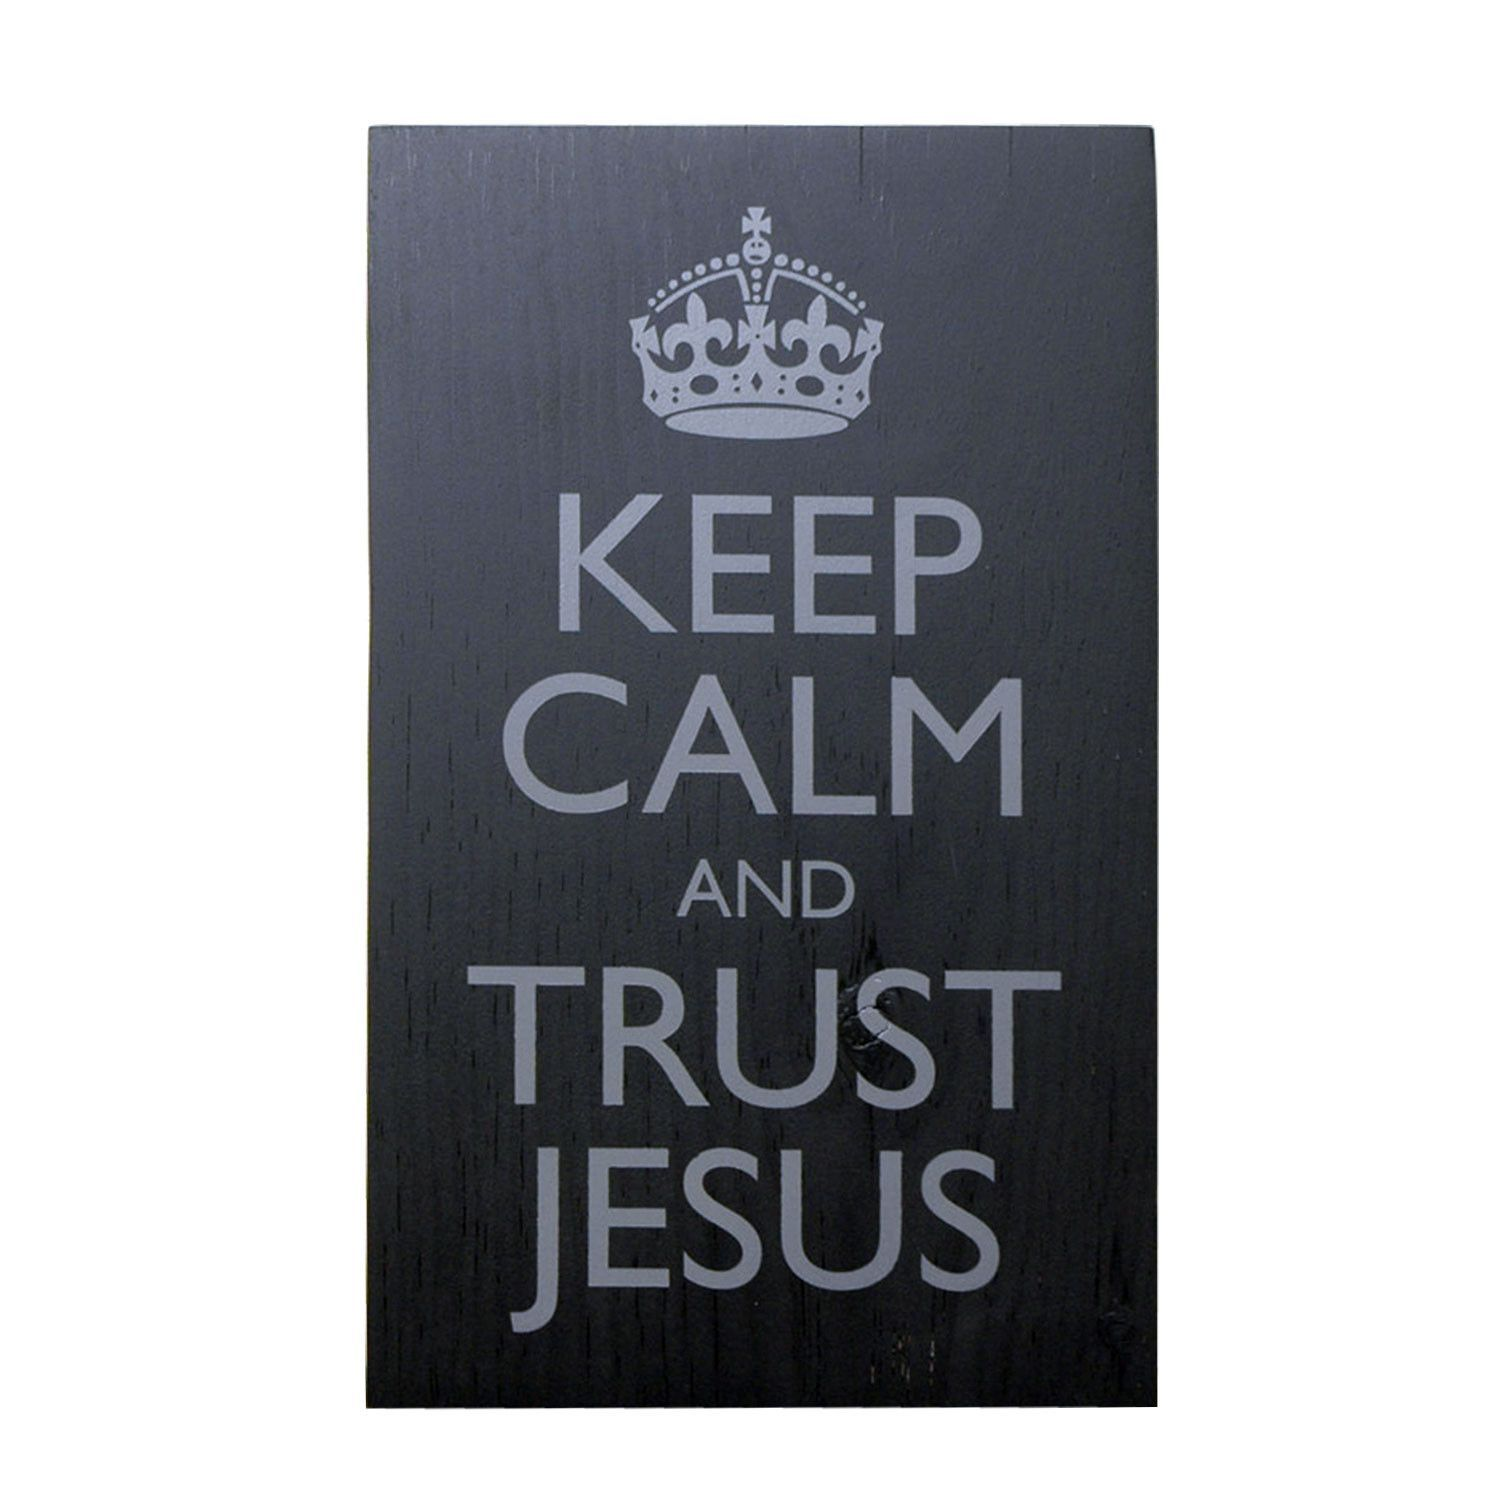 Keep Calm And Trust Jesus, Wooden Wall Sign, Christian, Wall Decor, Wall